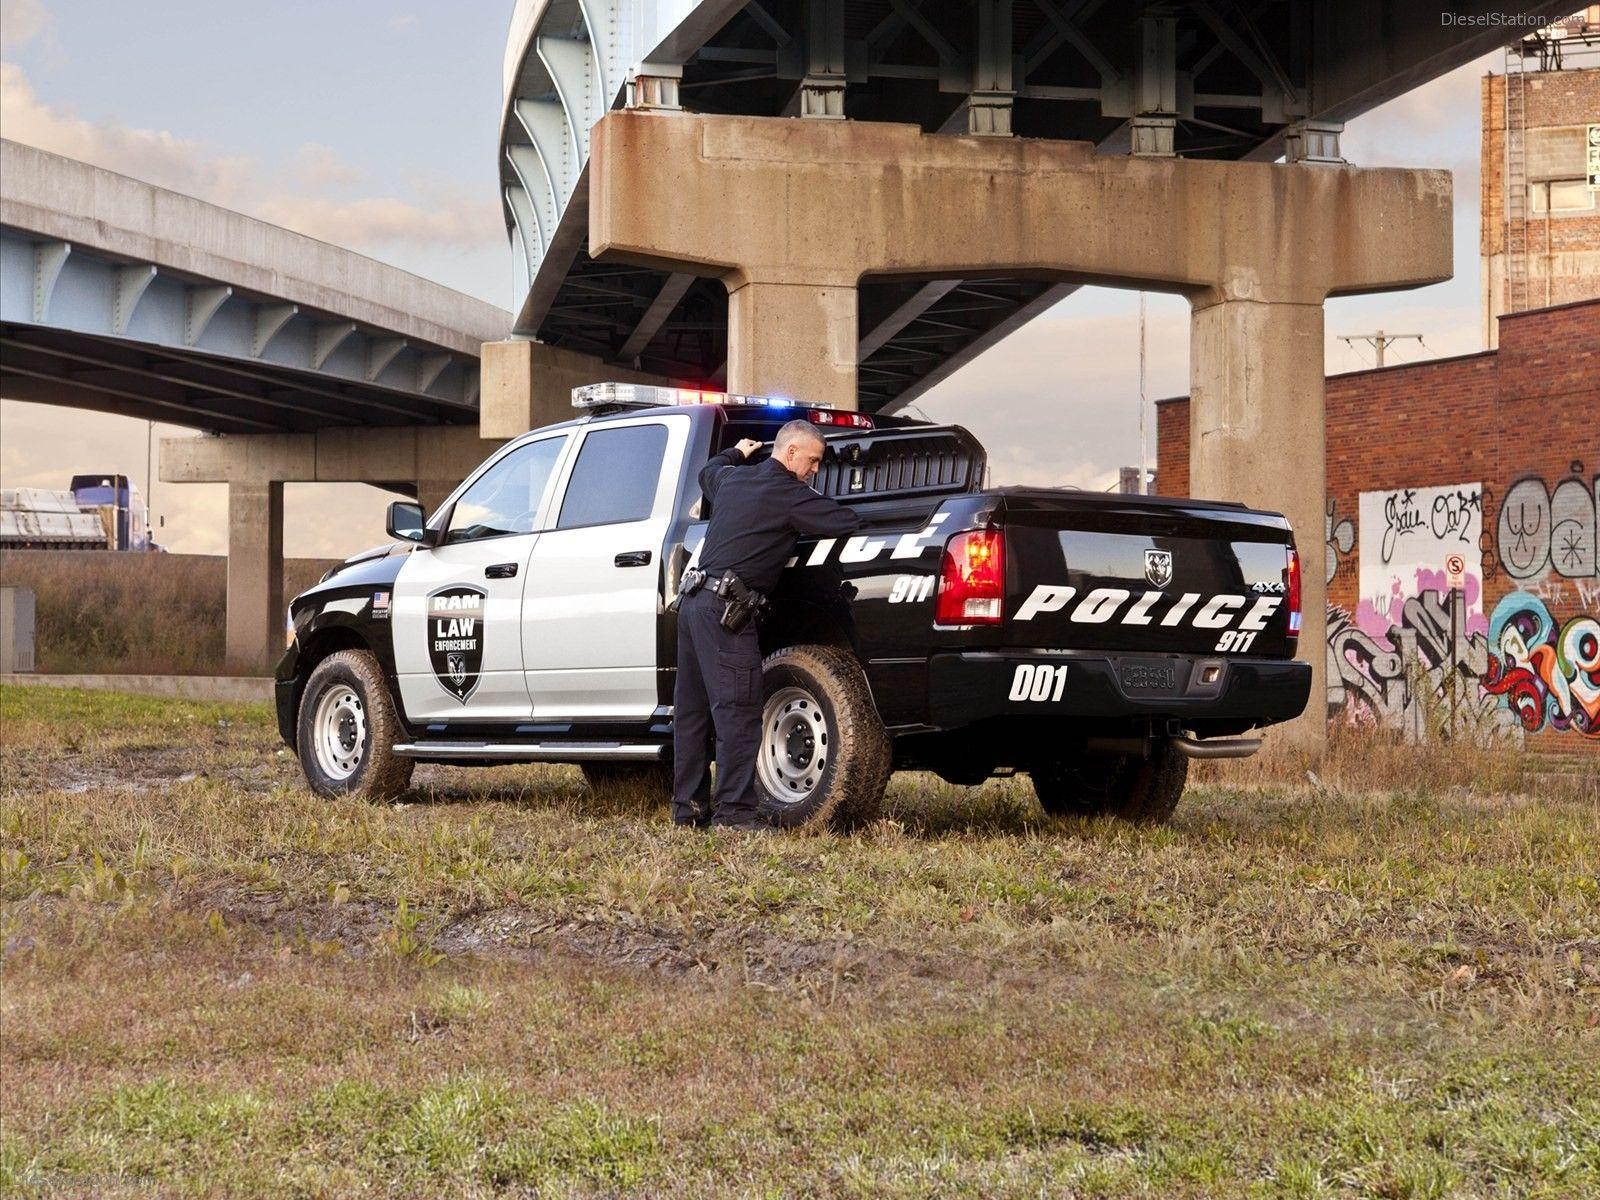 Dodge Ram 1500 Police Truck 2012 Exotic Car Wallpapers #02 of 6 ...